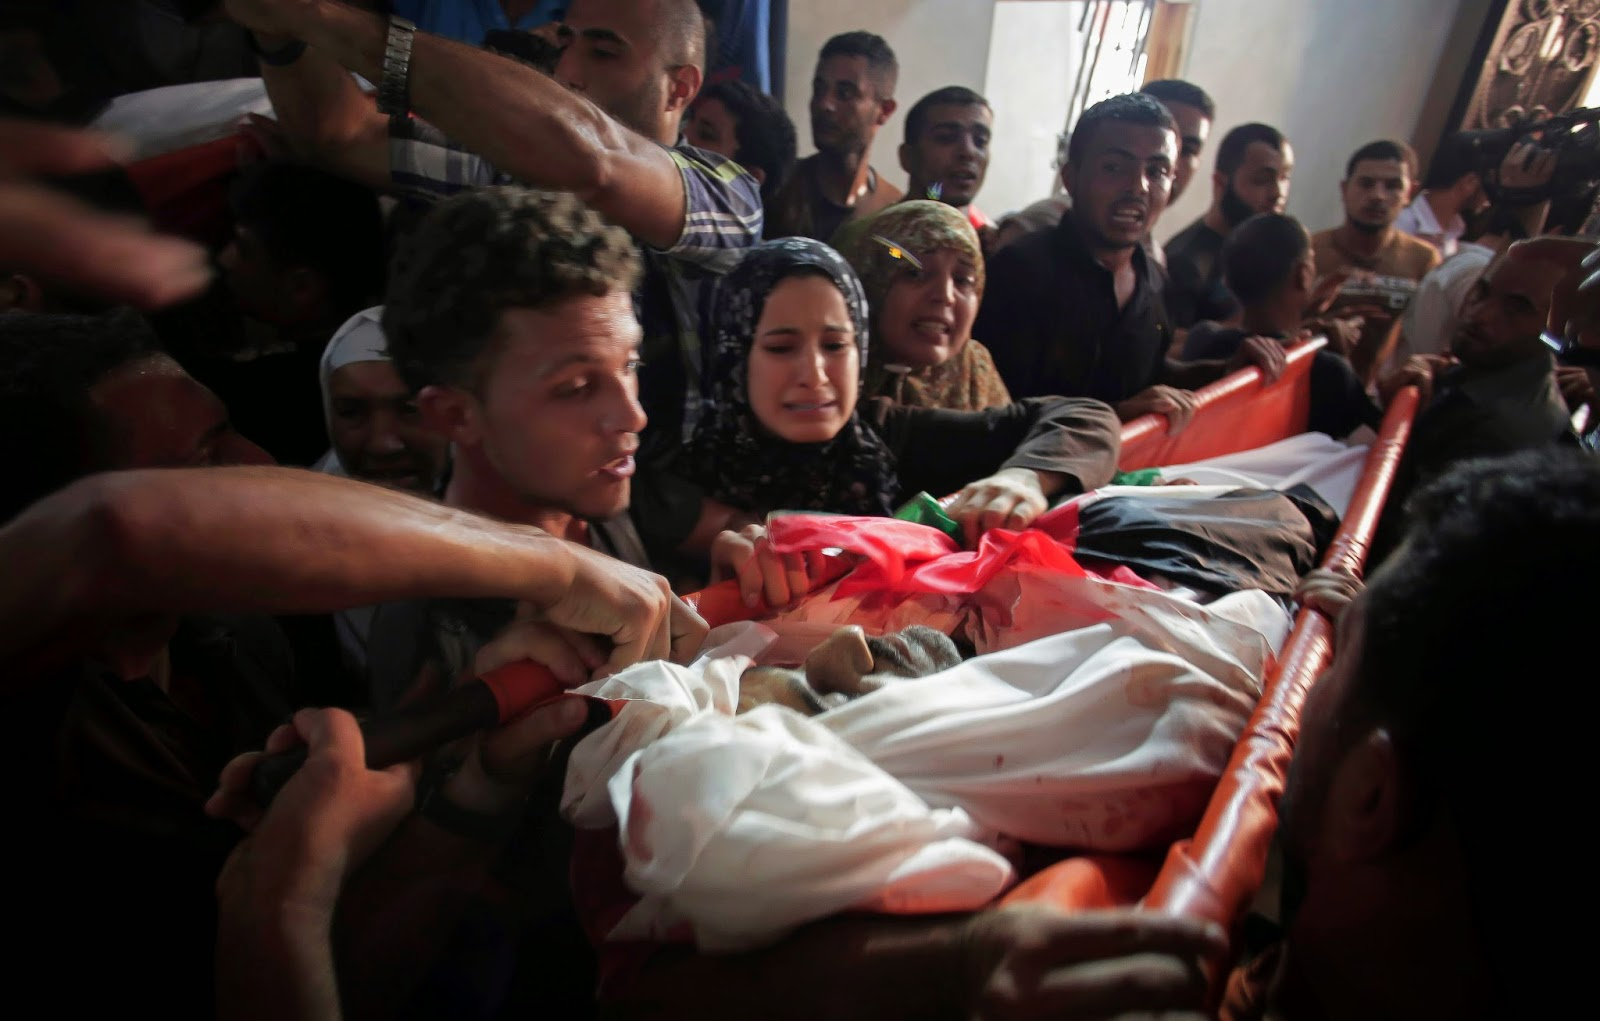 9 Graphics to Help You Understand What Life Is Really Like in Gaza